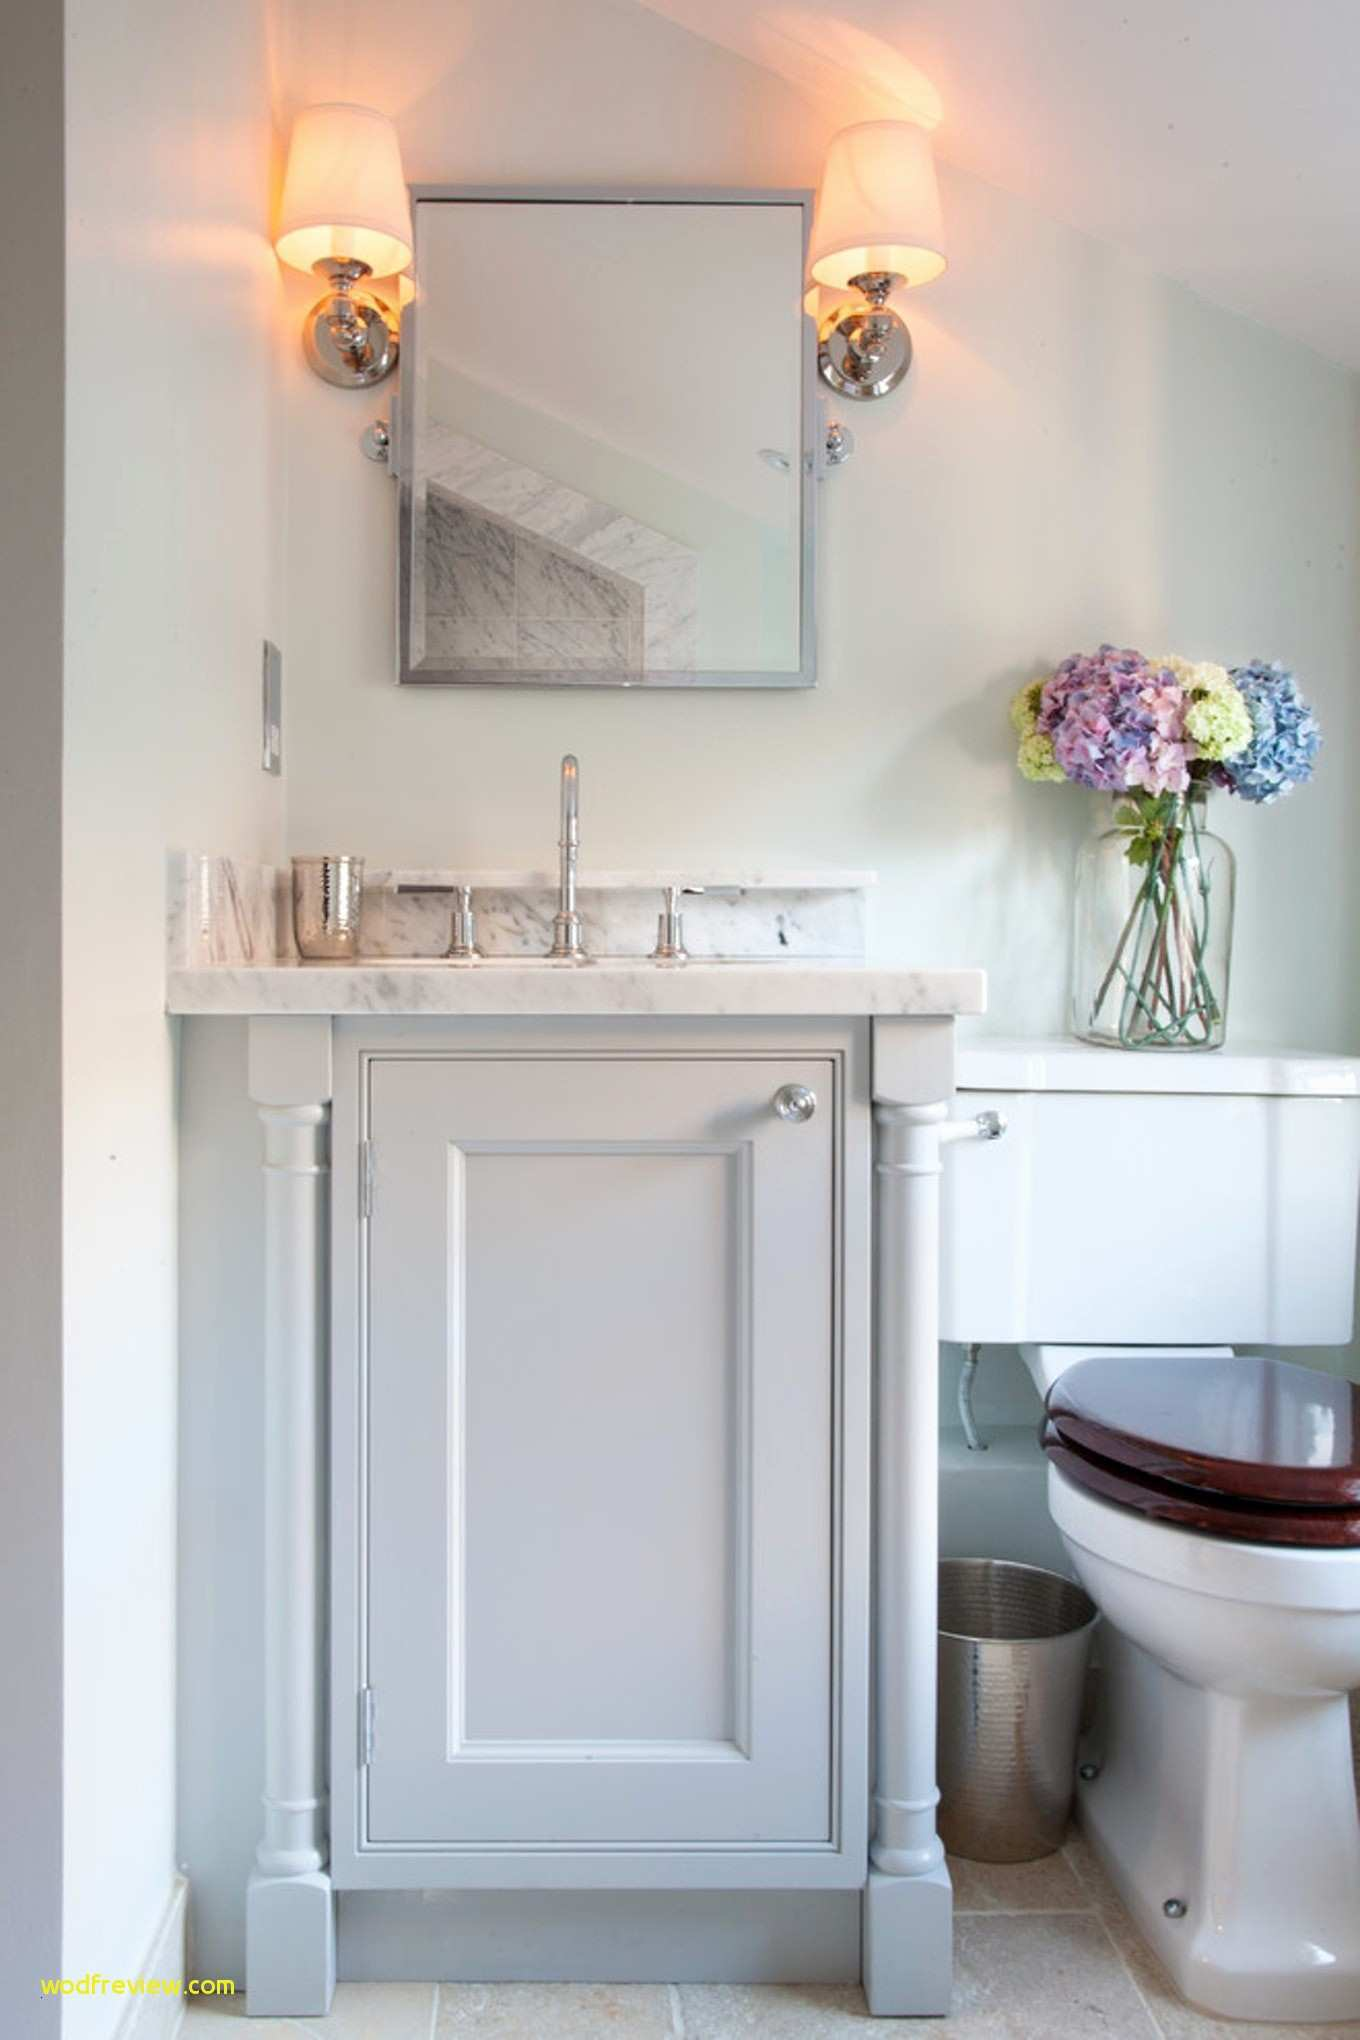 Stylish Bathroom Wall Mirrors with Lights terranovaenergyltd